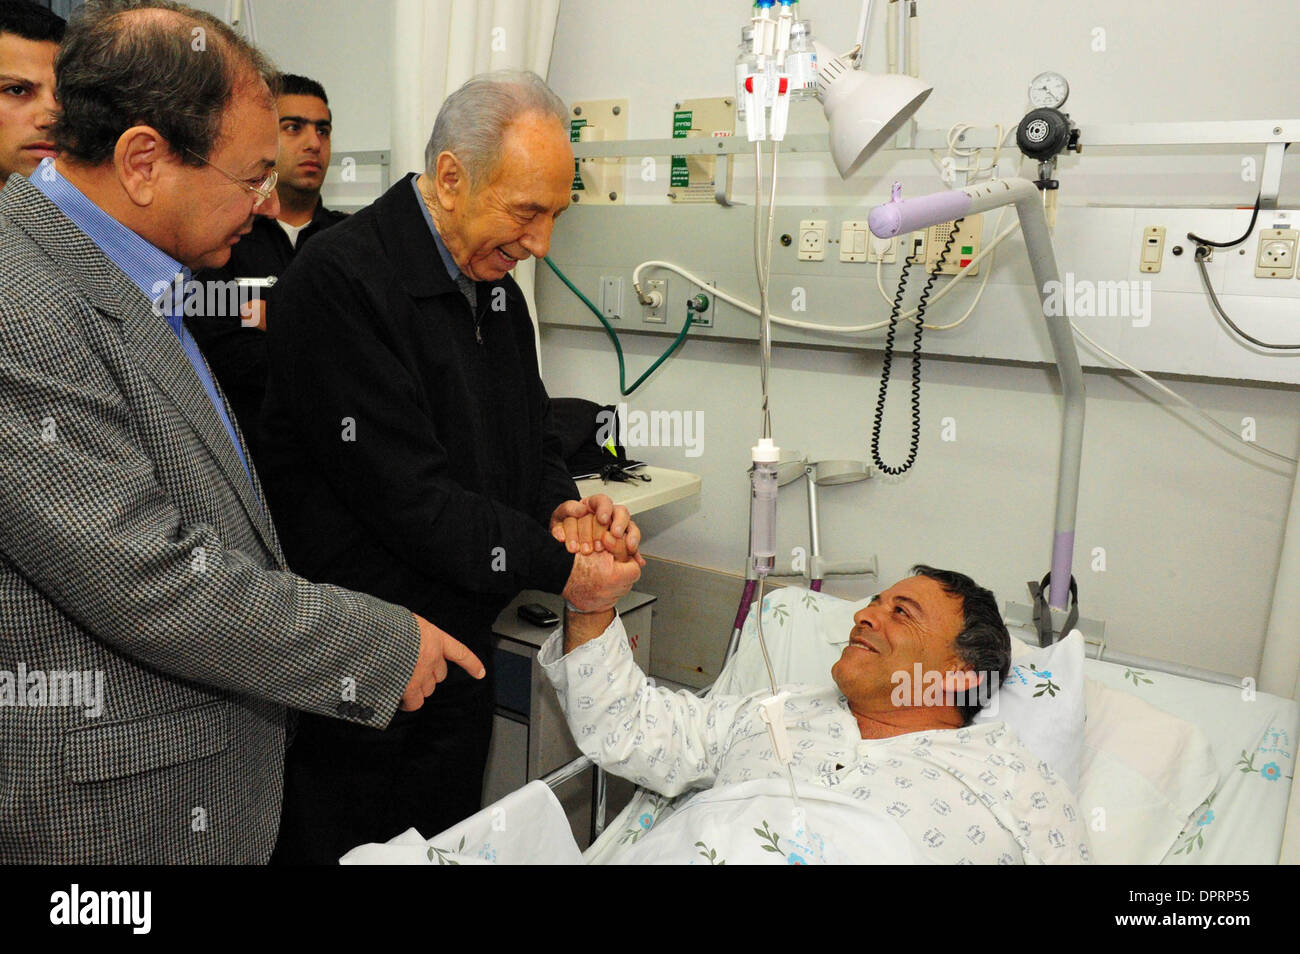 Dec 30, 2008 - Ashkelon, Israel - President SHIMON PERES is visiting victims of rocket attacks in Barzilai hospital in Ashkelon on Wednesday December 31, 2008. Peres arrived this morning in Ashkelon in order to demonstrate solidarity with the residents of the city. President Peres visited children seeking refuge in a municipal bomb shelter, visited victims of Qassam and Grad rocket - Stock Image